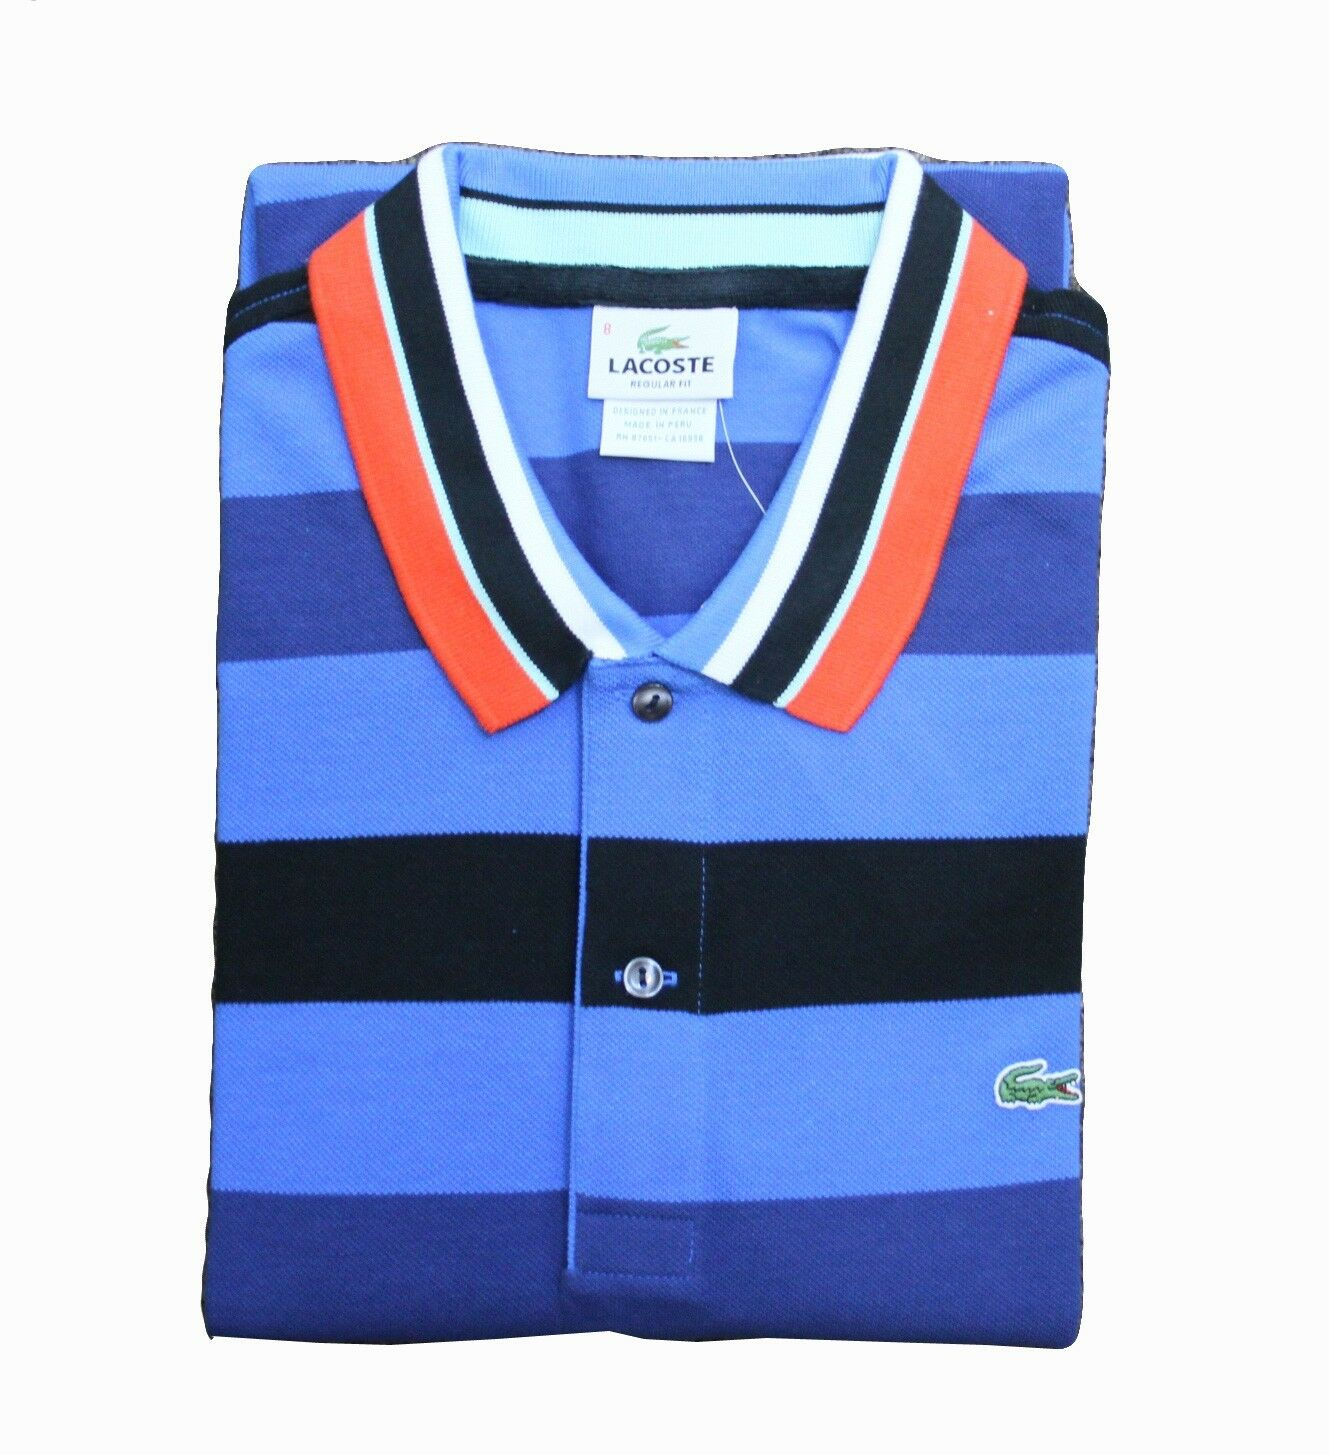 NEW LACOSTE BRAND MEN'S PIQUE POLO SHIRT CROC LOGO MULTI blueE TEE T-SHIRTS